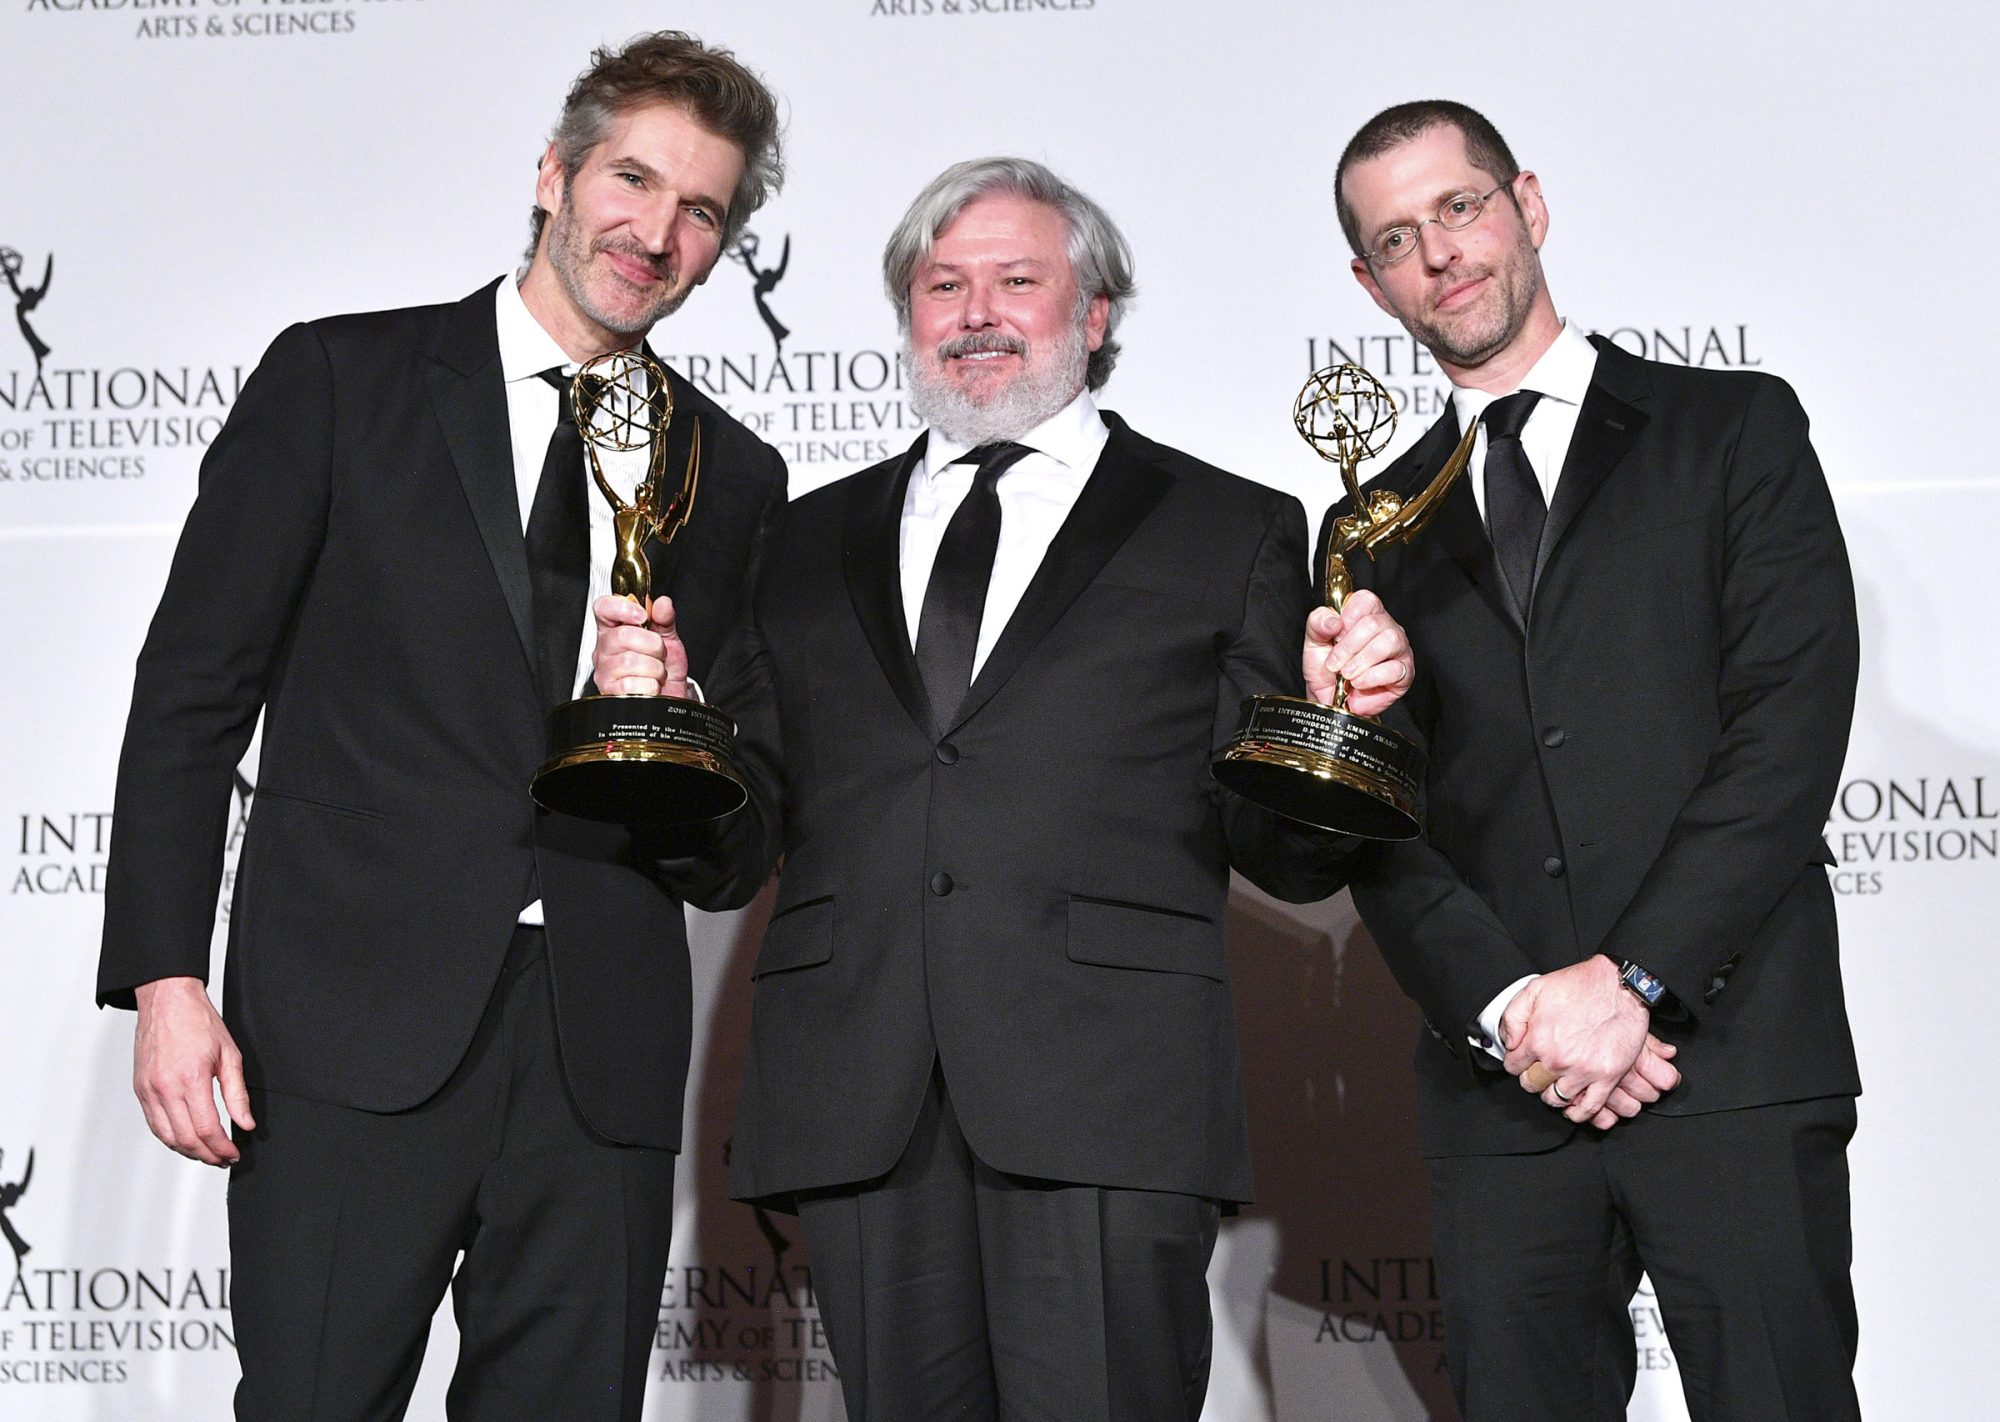 David Benioff and D.B. Weiss Winner of the Founder award with Presenter Conleth Hill